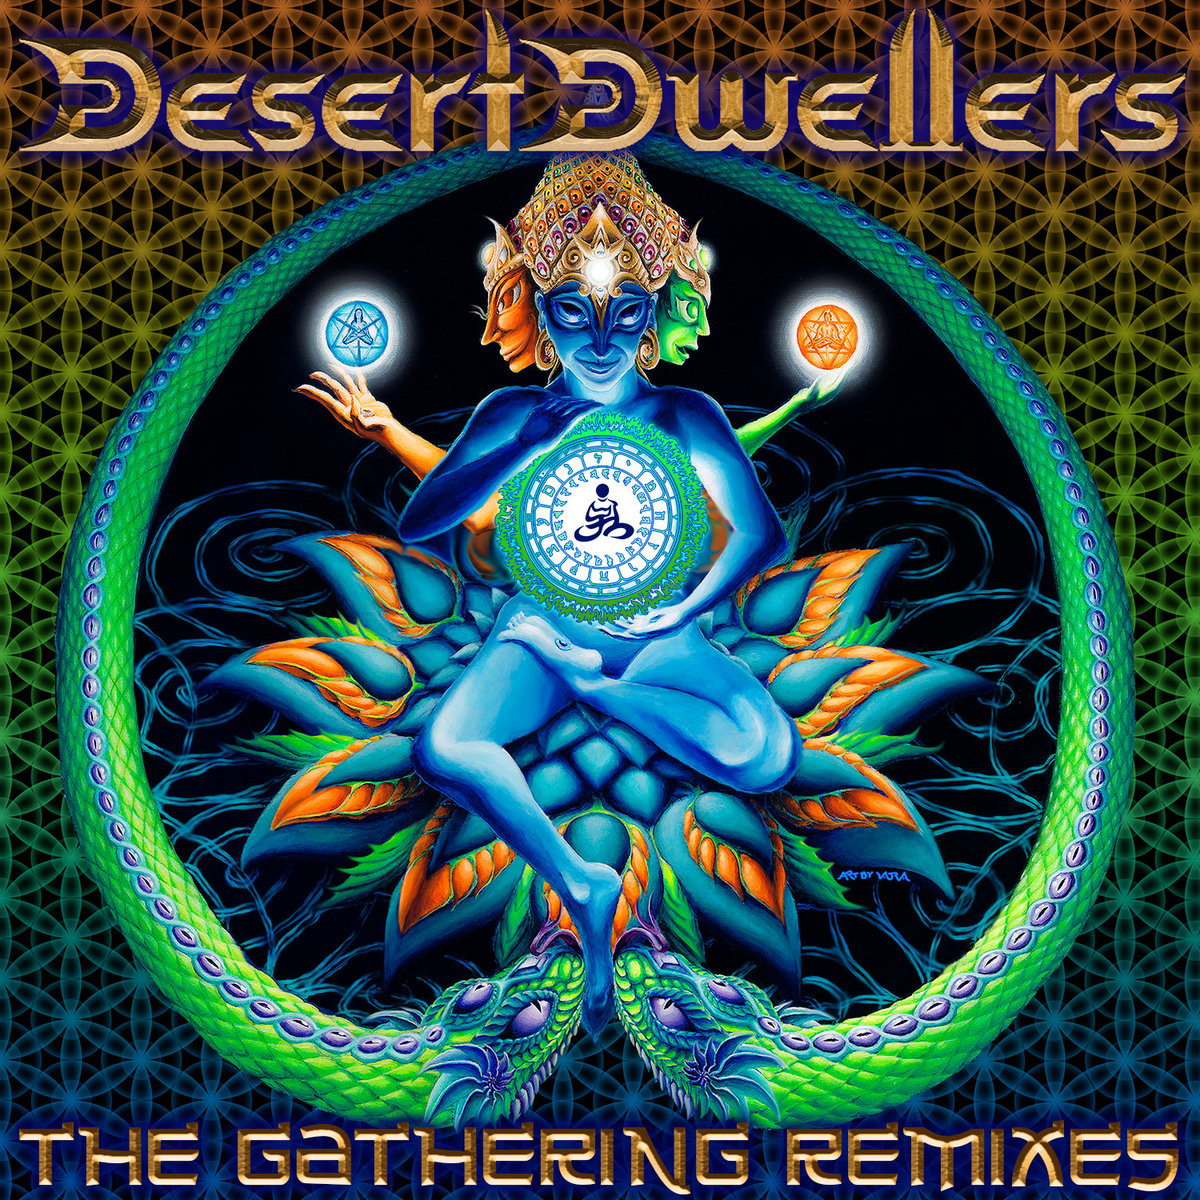 Quade Desert Dwellers The Gathering Remixes remix Glitch Hop Bass Music Synth Organic World Music Yoga Dub Living Light Soulacybin Midtempo 105bpm downtempo dub ethnic downtemple electronic global chill-out psy step sacred bass